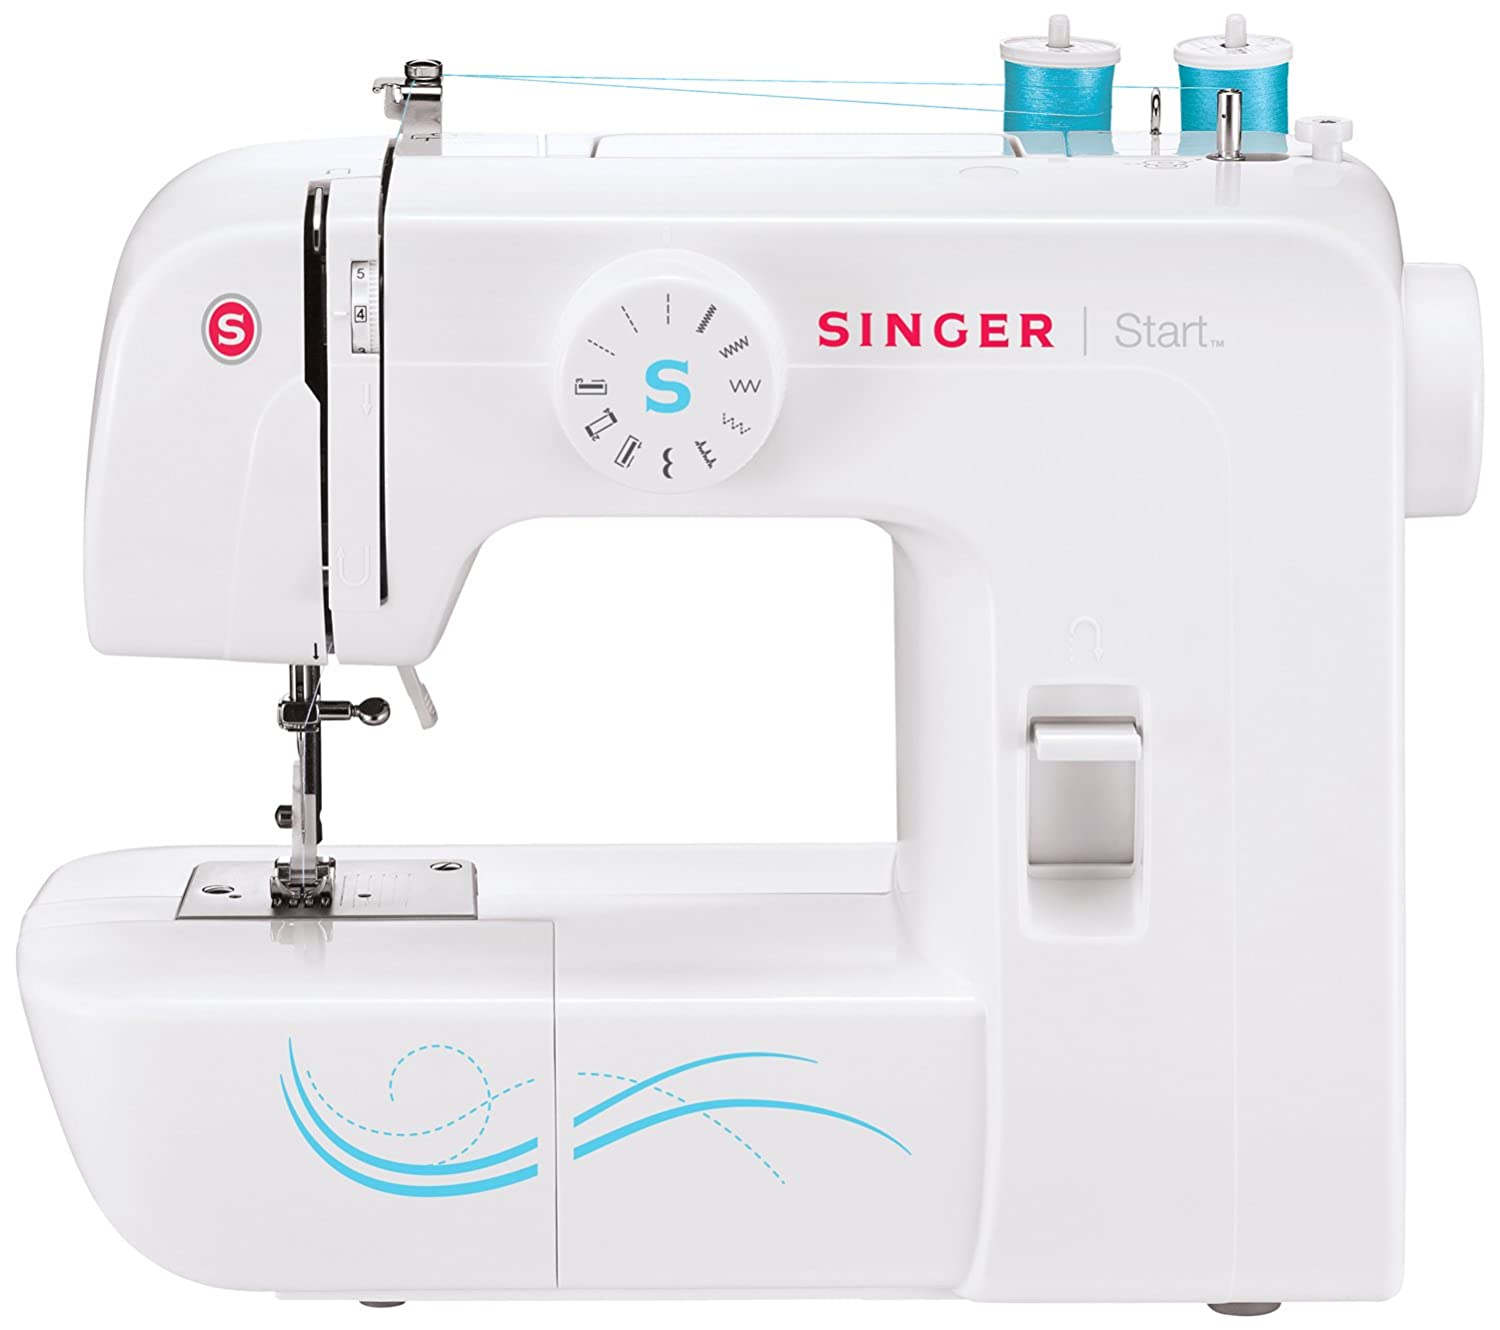 Singer 1304 Start Free ArmHandy Sewing Machine with 6 Built-In Stitches